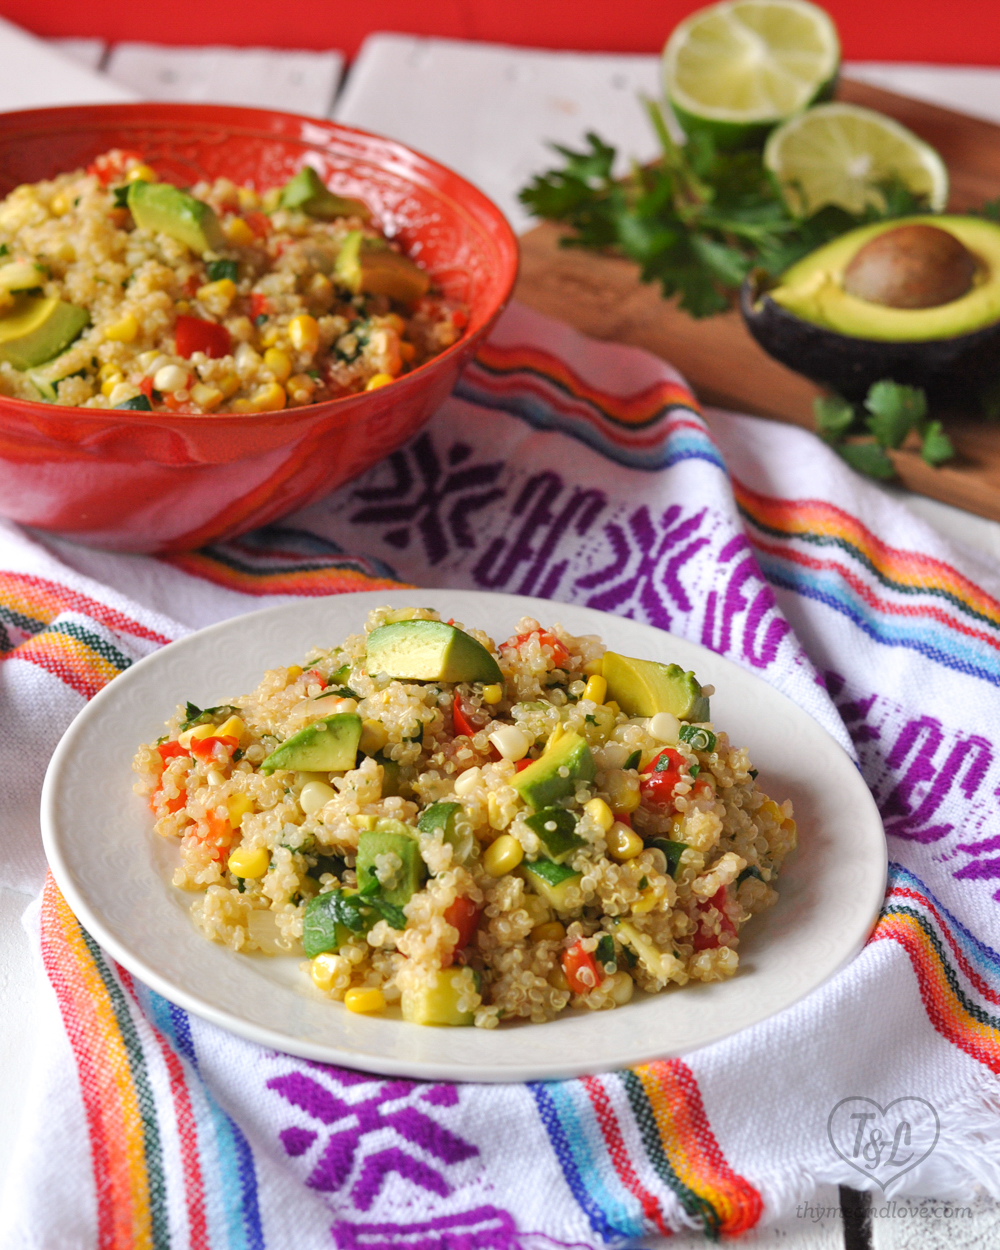 Zucchini and Corn Quinoa Salad with Avocado is yummy served warmed or cold. A healthy lunch option perfect for Summer! #salad #quinoa #vegan #glutenfree